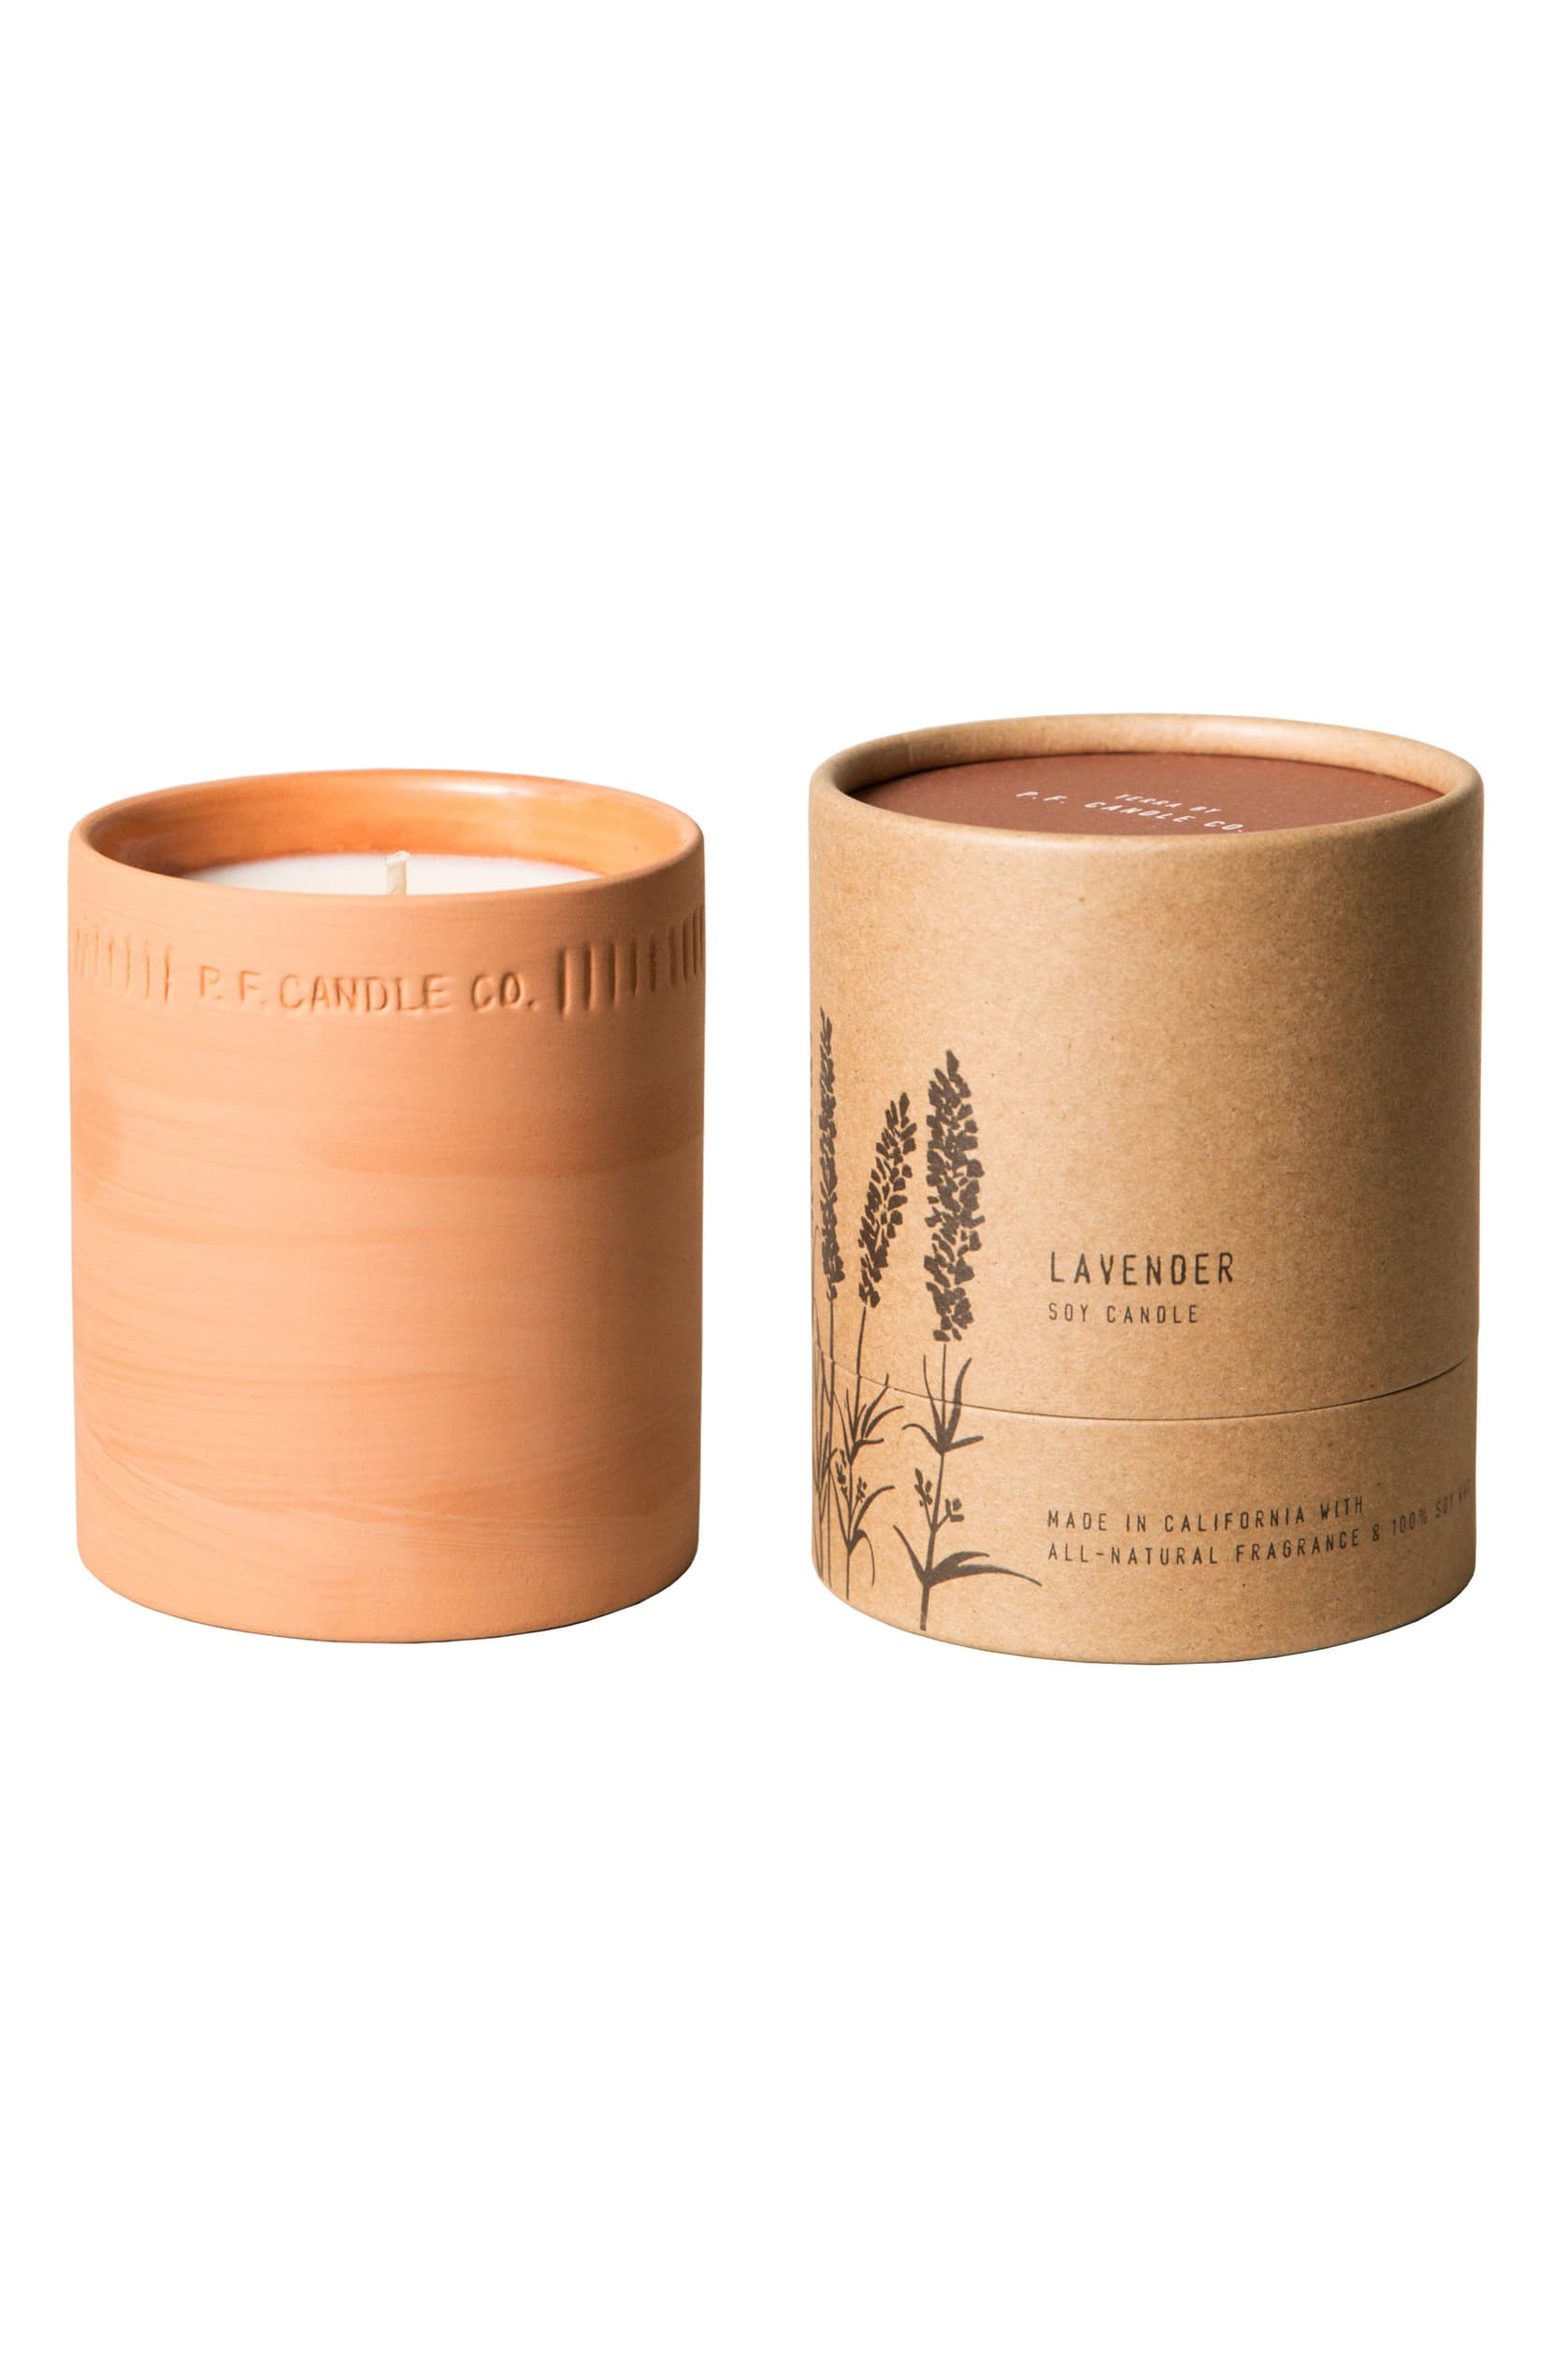 P.F. Candle Co. Lavender Terra Candle